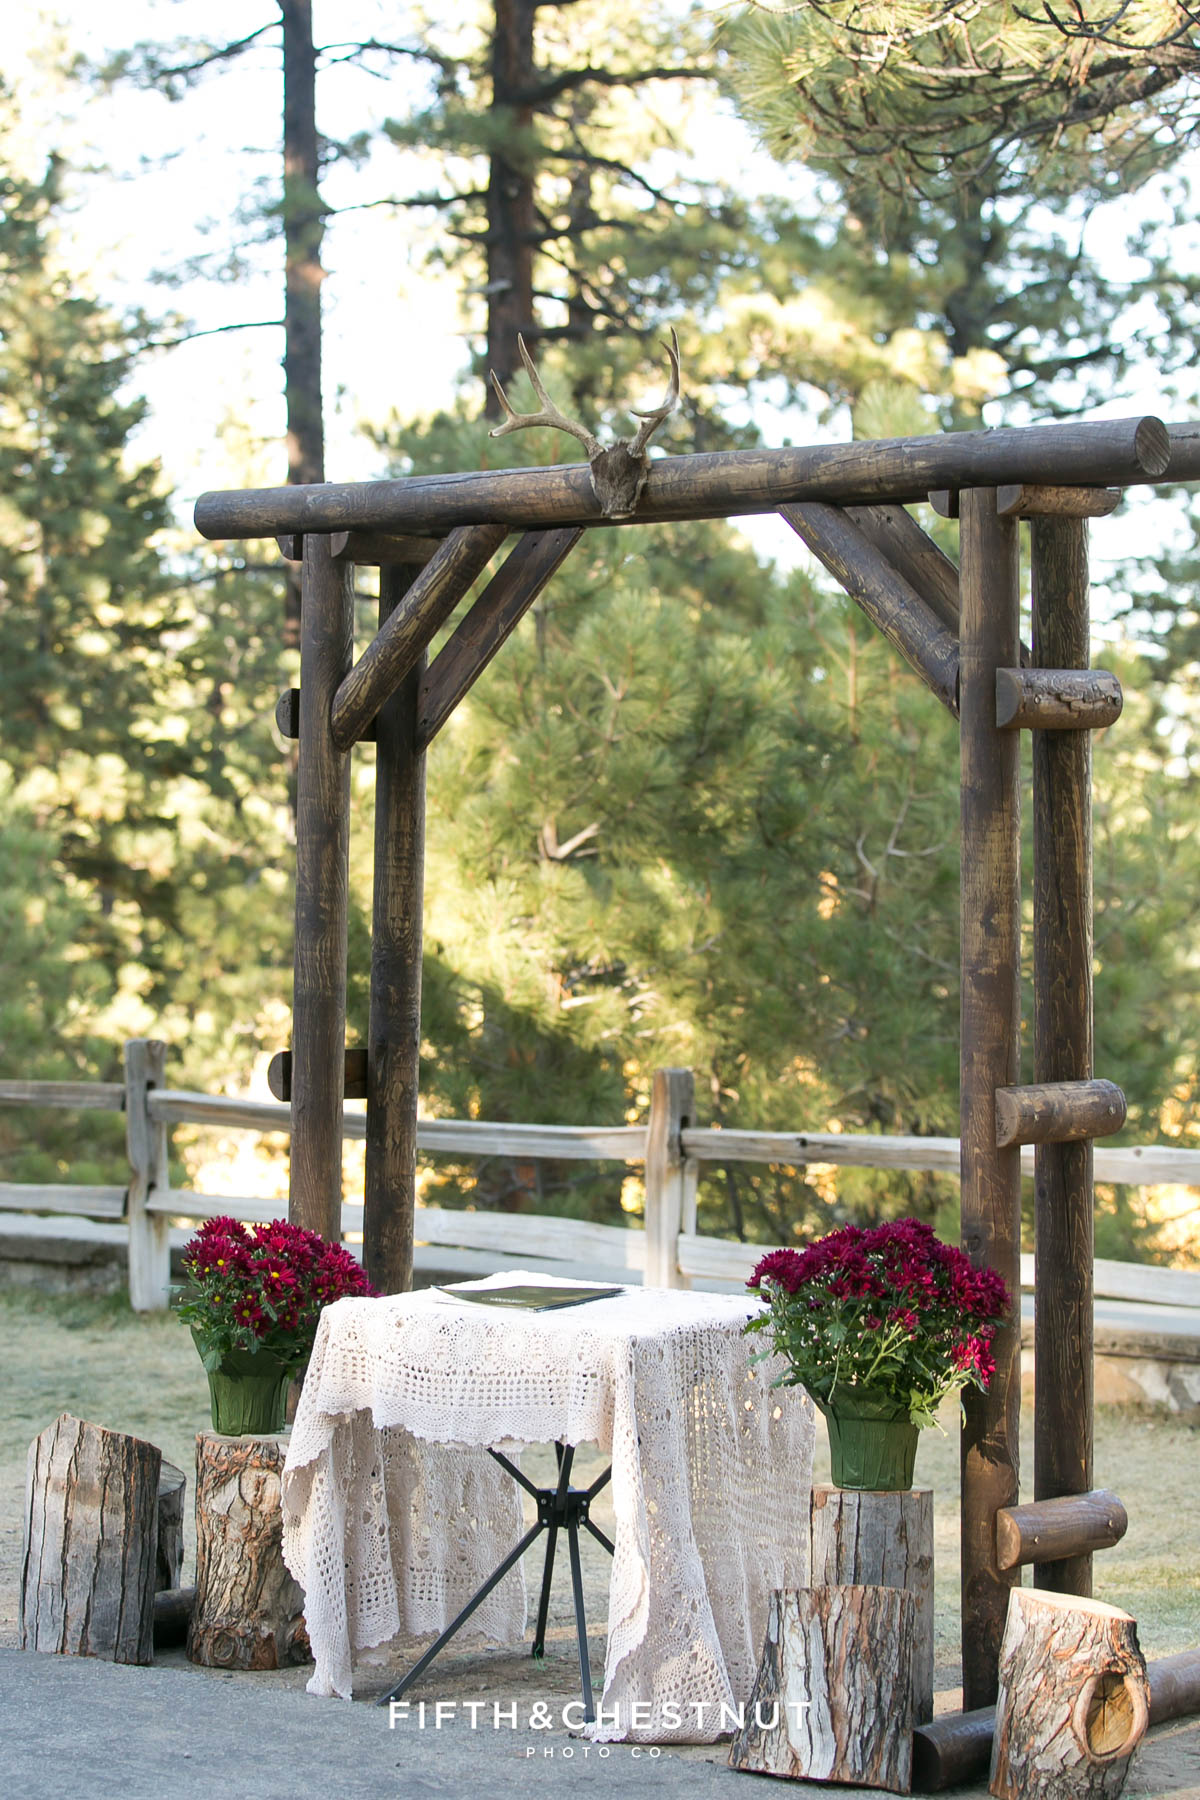 Fish hatchery reno wedding